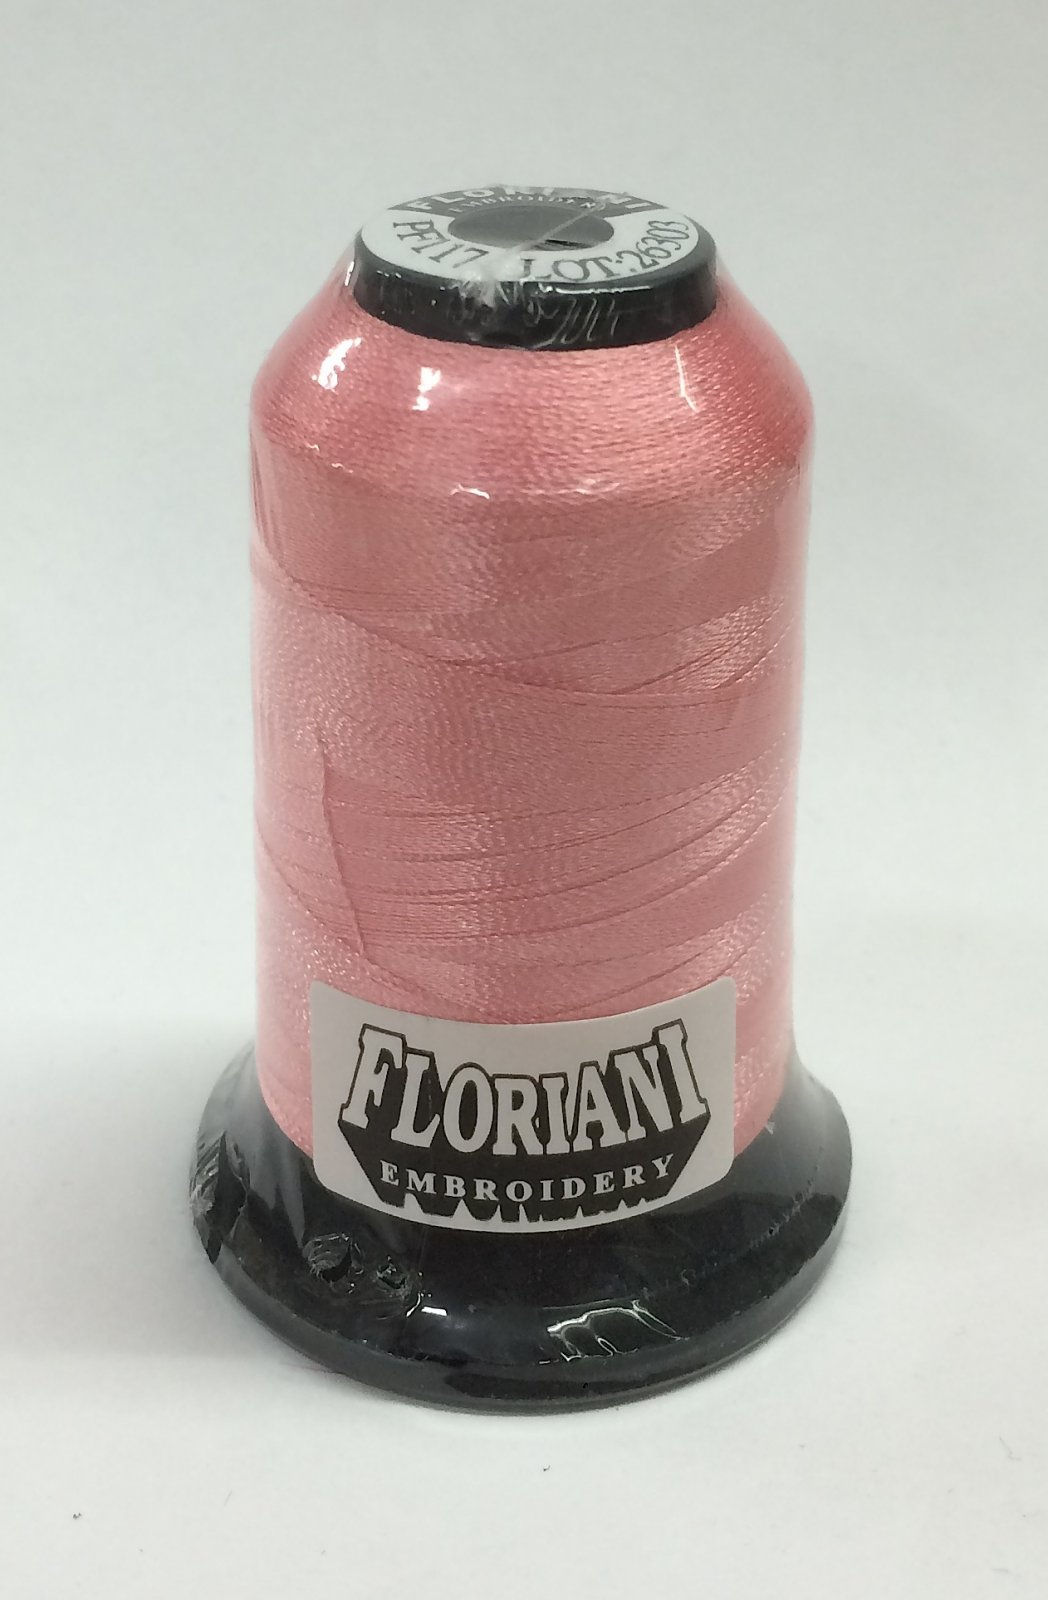 Floriani Embroidery Thread Color #0117